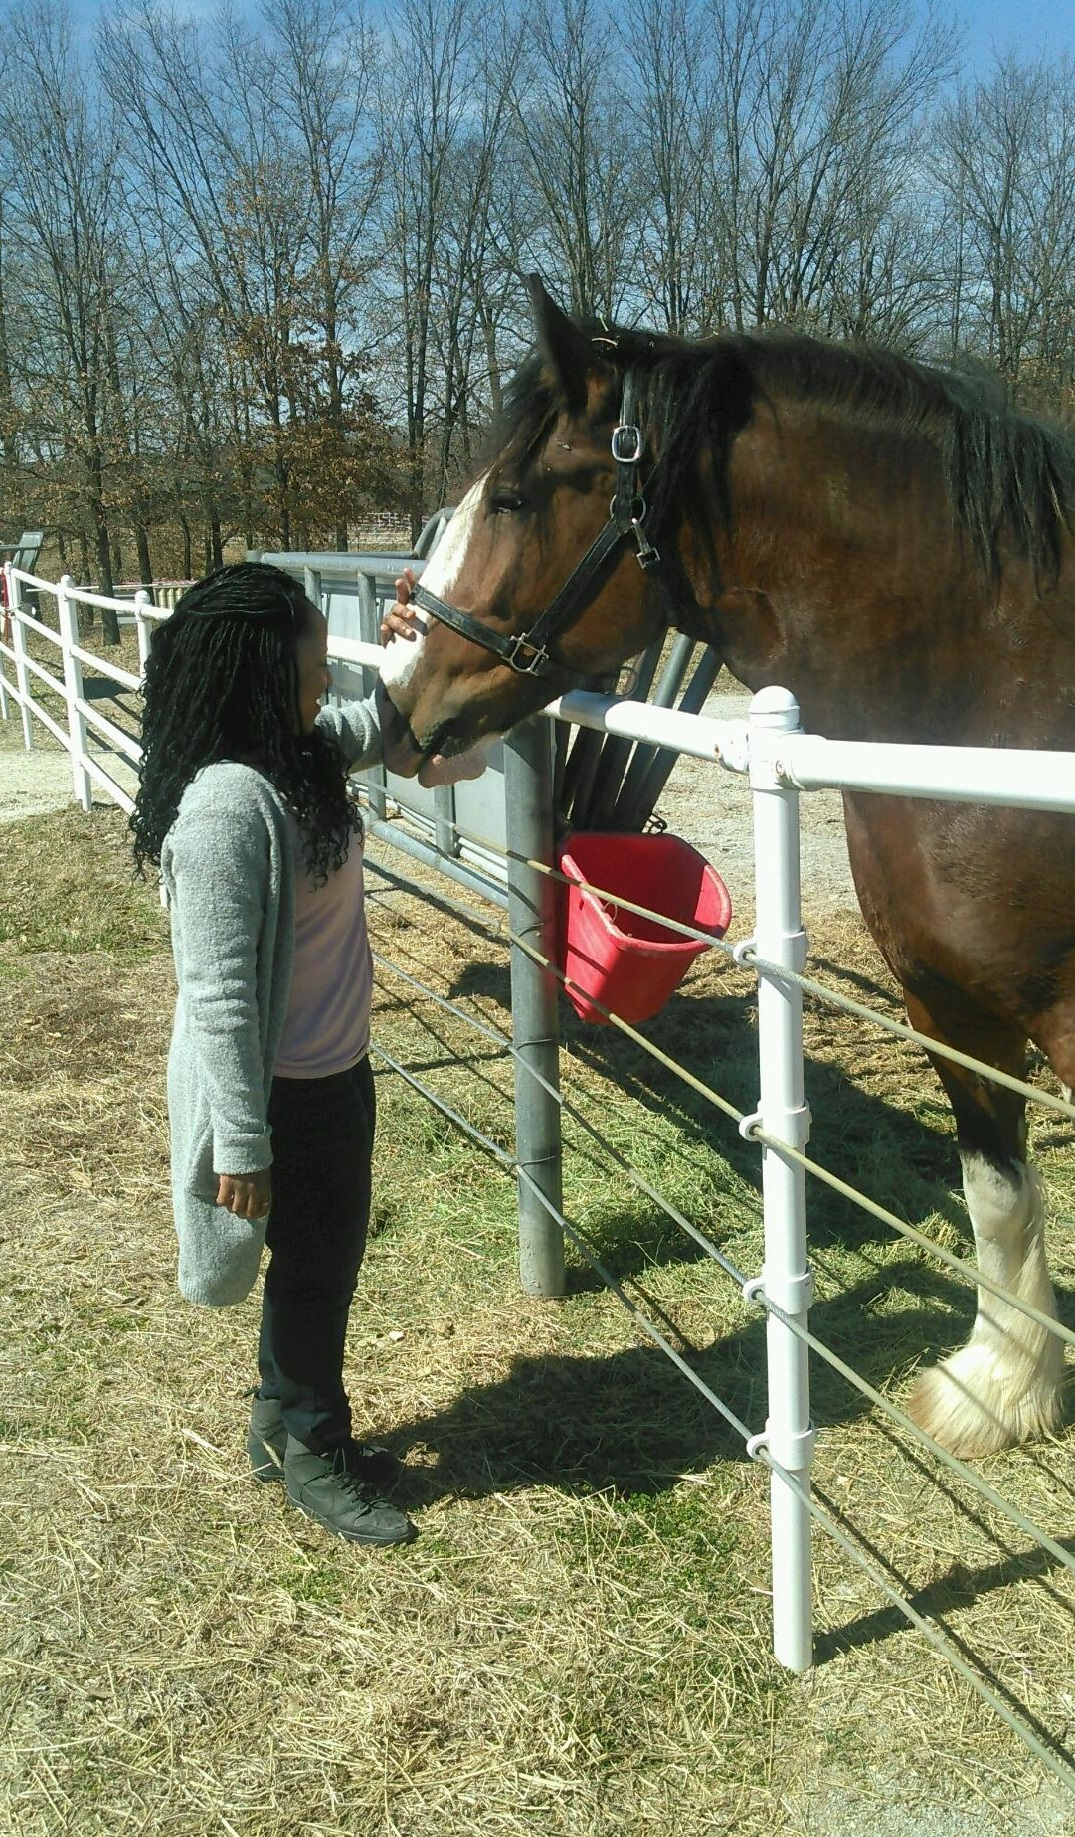 Warm Springs Ranch Home of Budweiser Clydesdales family tour review makeba giles faith health and home faithhealthandhome